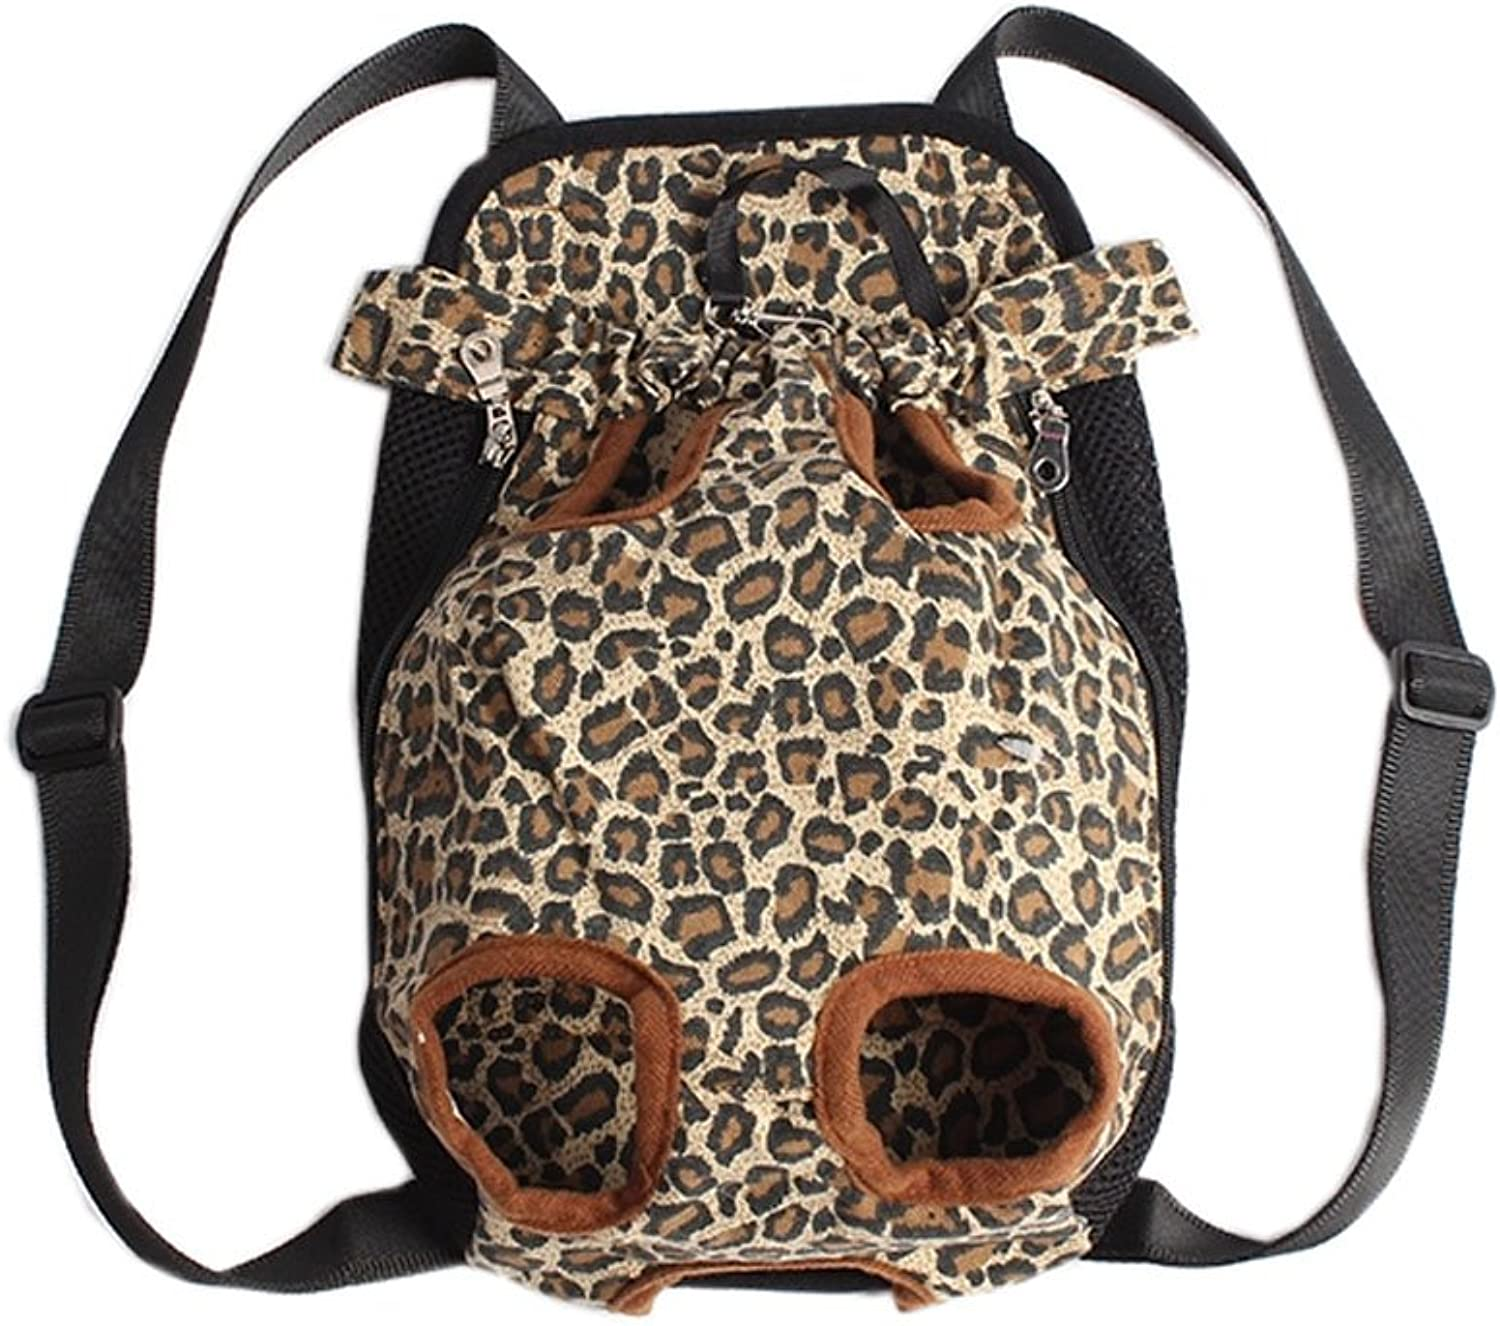 [Leopard] Portable Chest Carrier Backpack Bag for Pets Dogs(Bust 50cm,Up to 15LB)